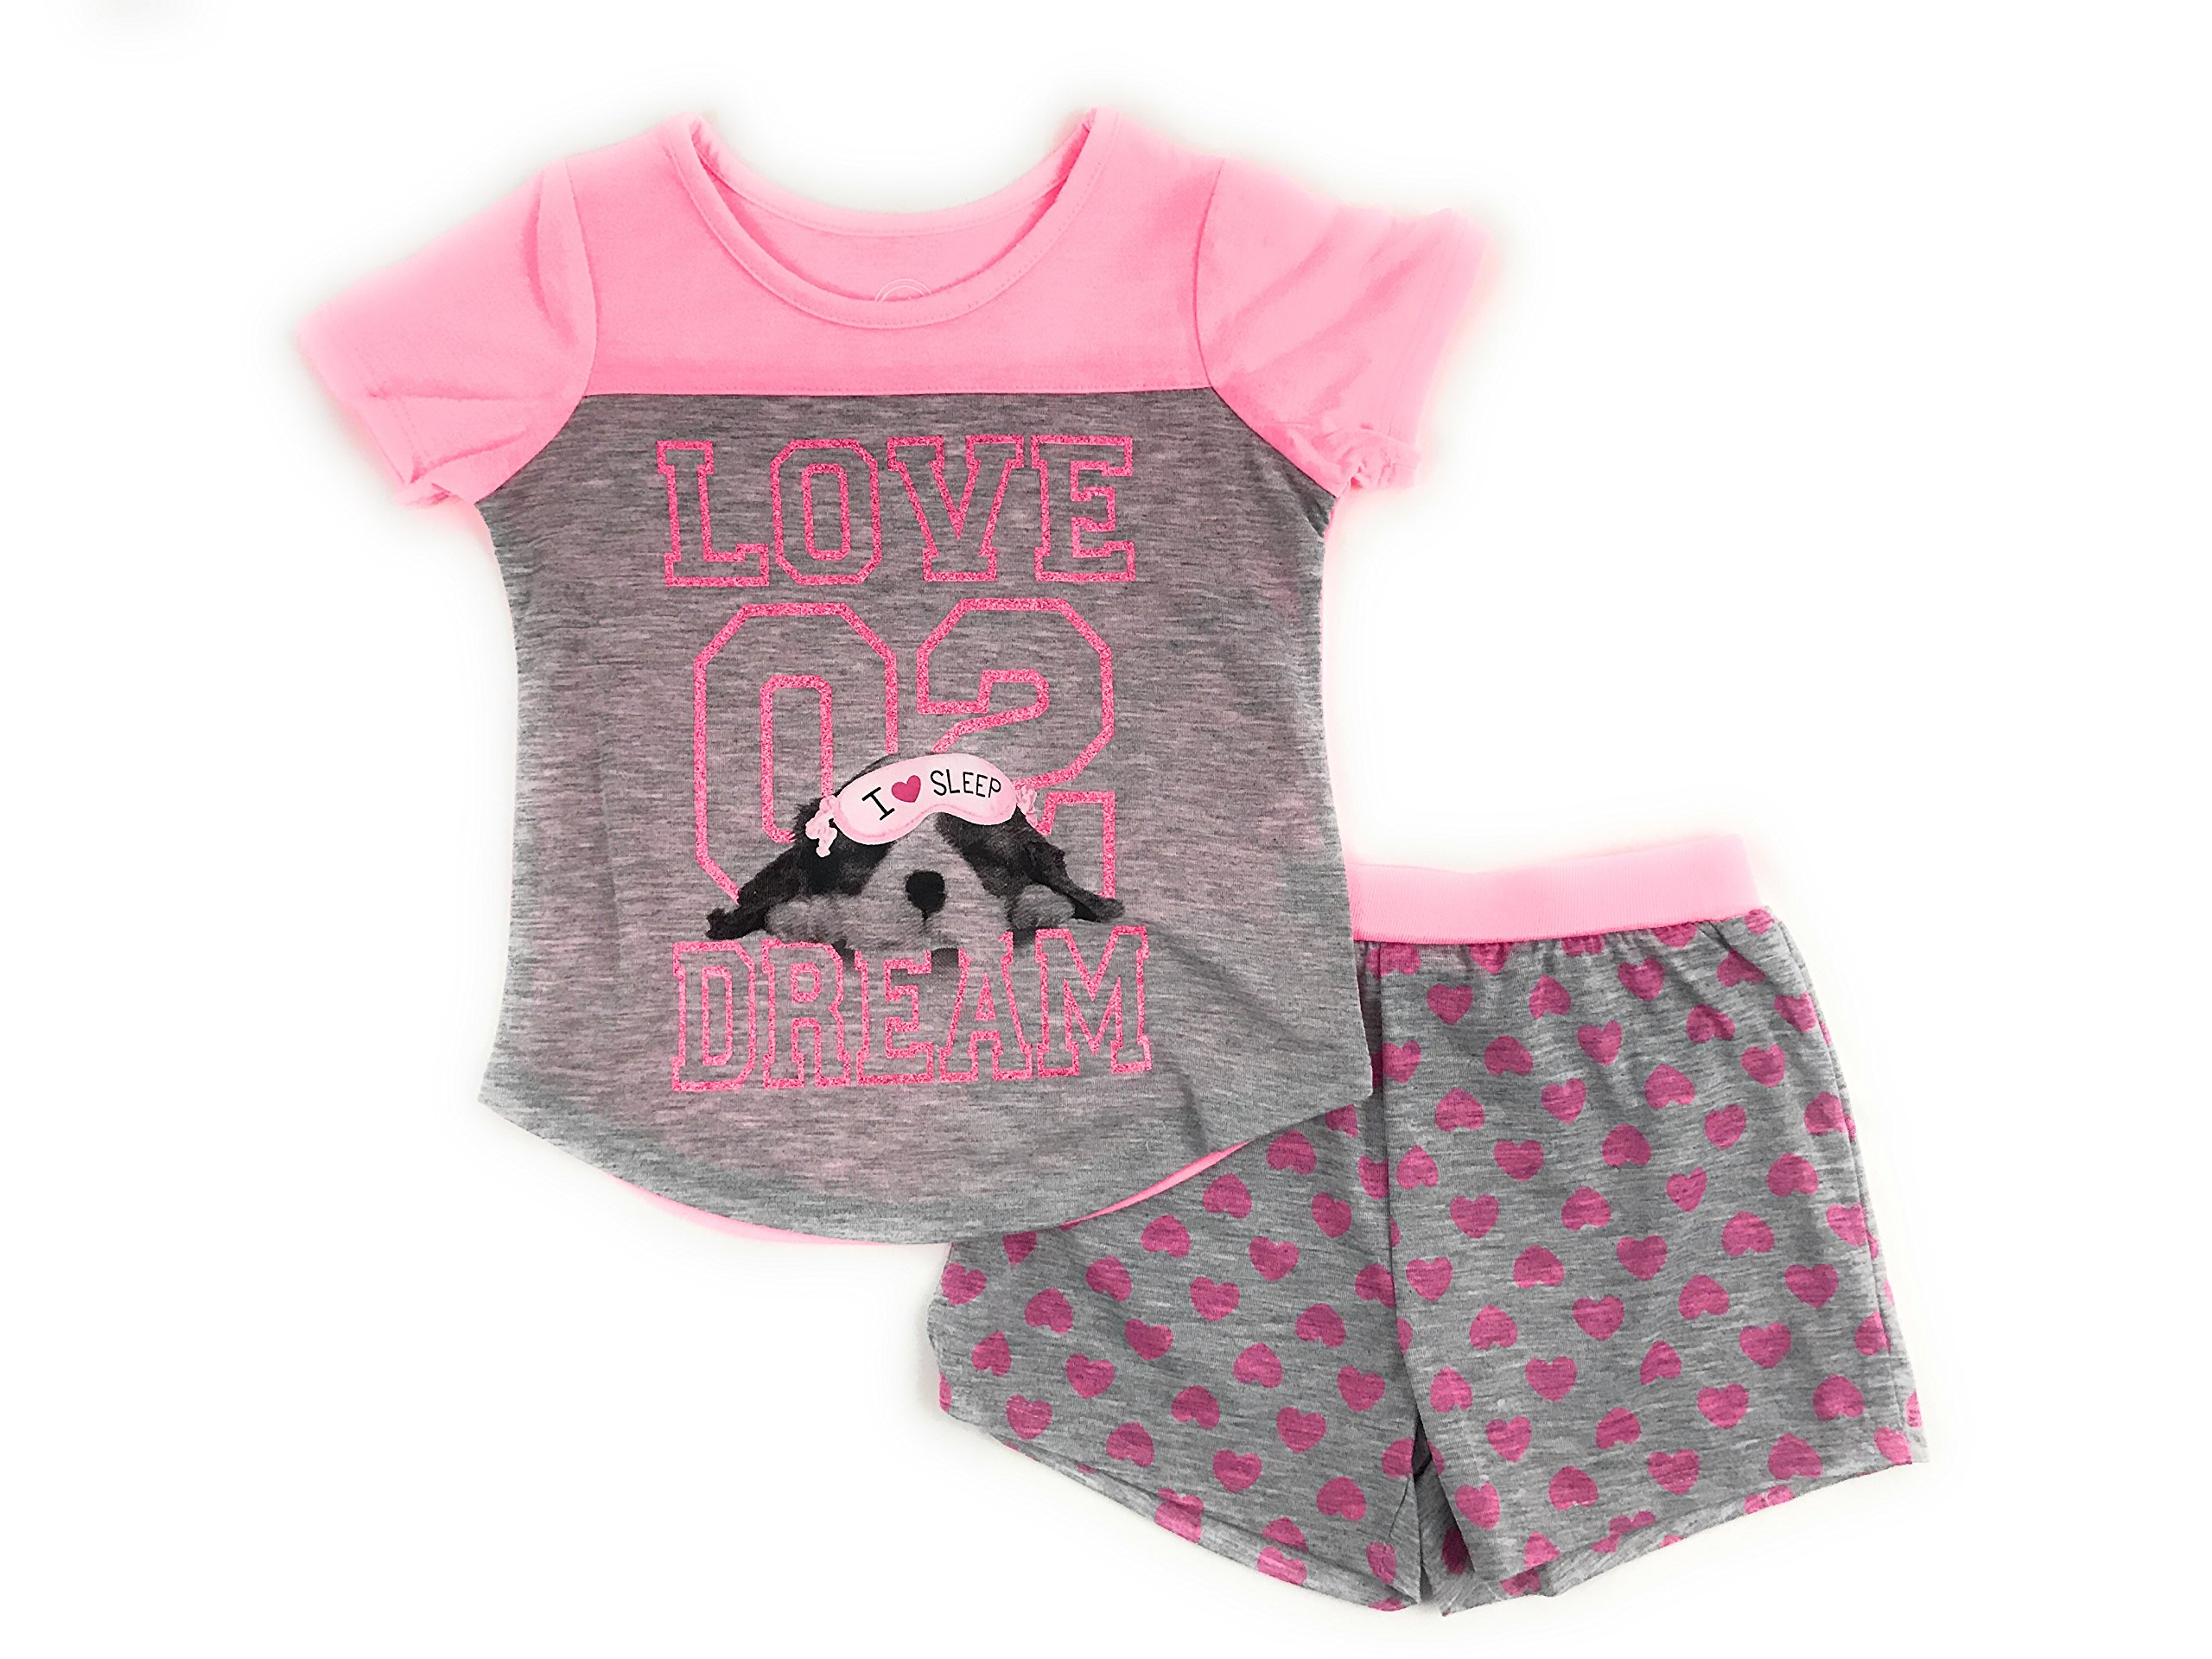 Girls Graphic Short Sleeve Top and Shorts 2-Piece Pajamas, Unicorn, Cat, Dog, Mermaid Styles (X-Small (4/5), Puppy Dreams)